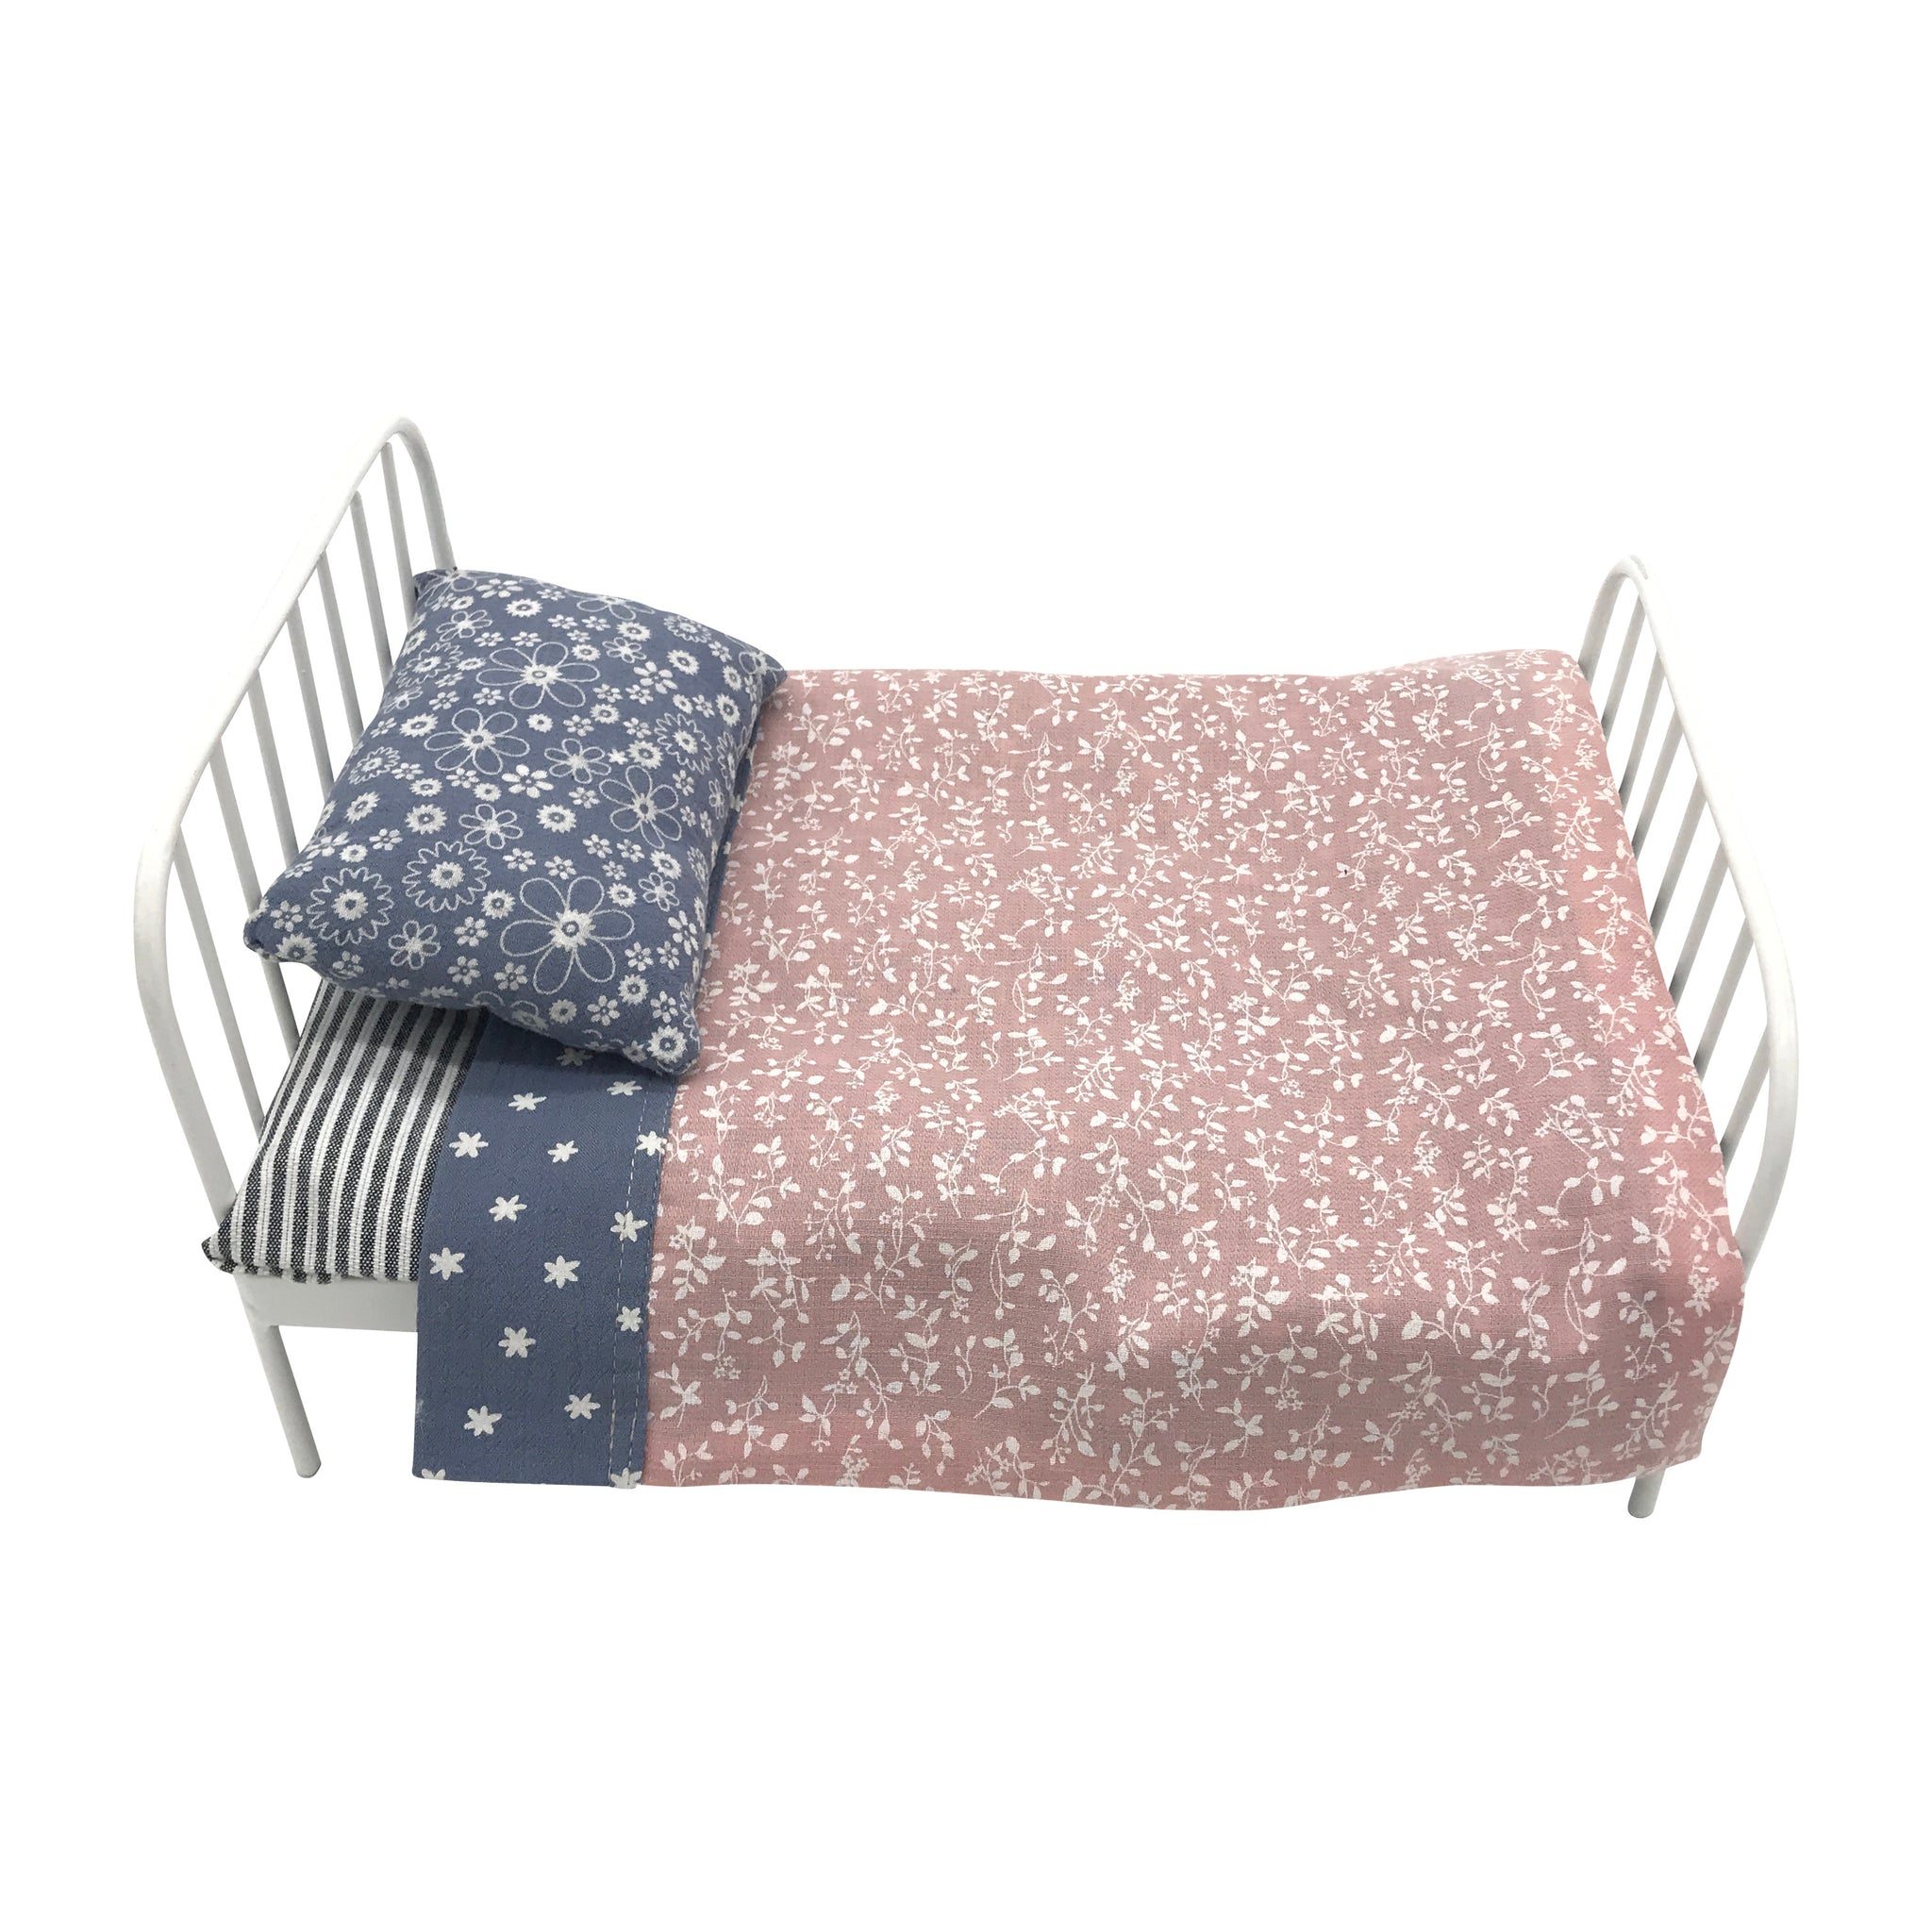 Jemima - Dolls Bed - And the little dog laughed - how-i-wonder